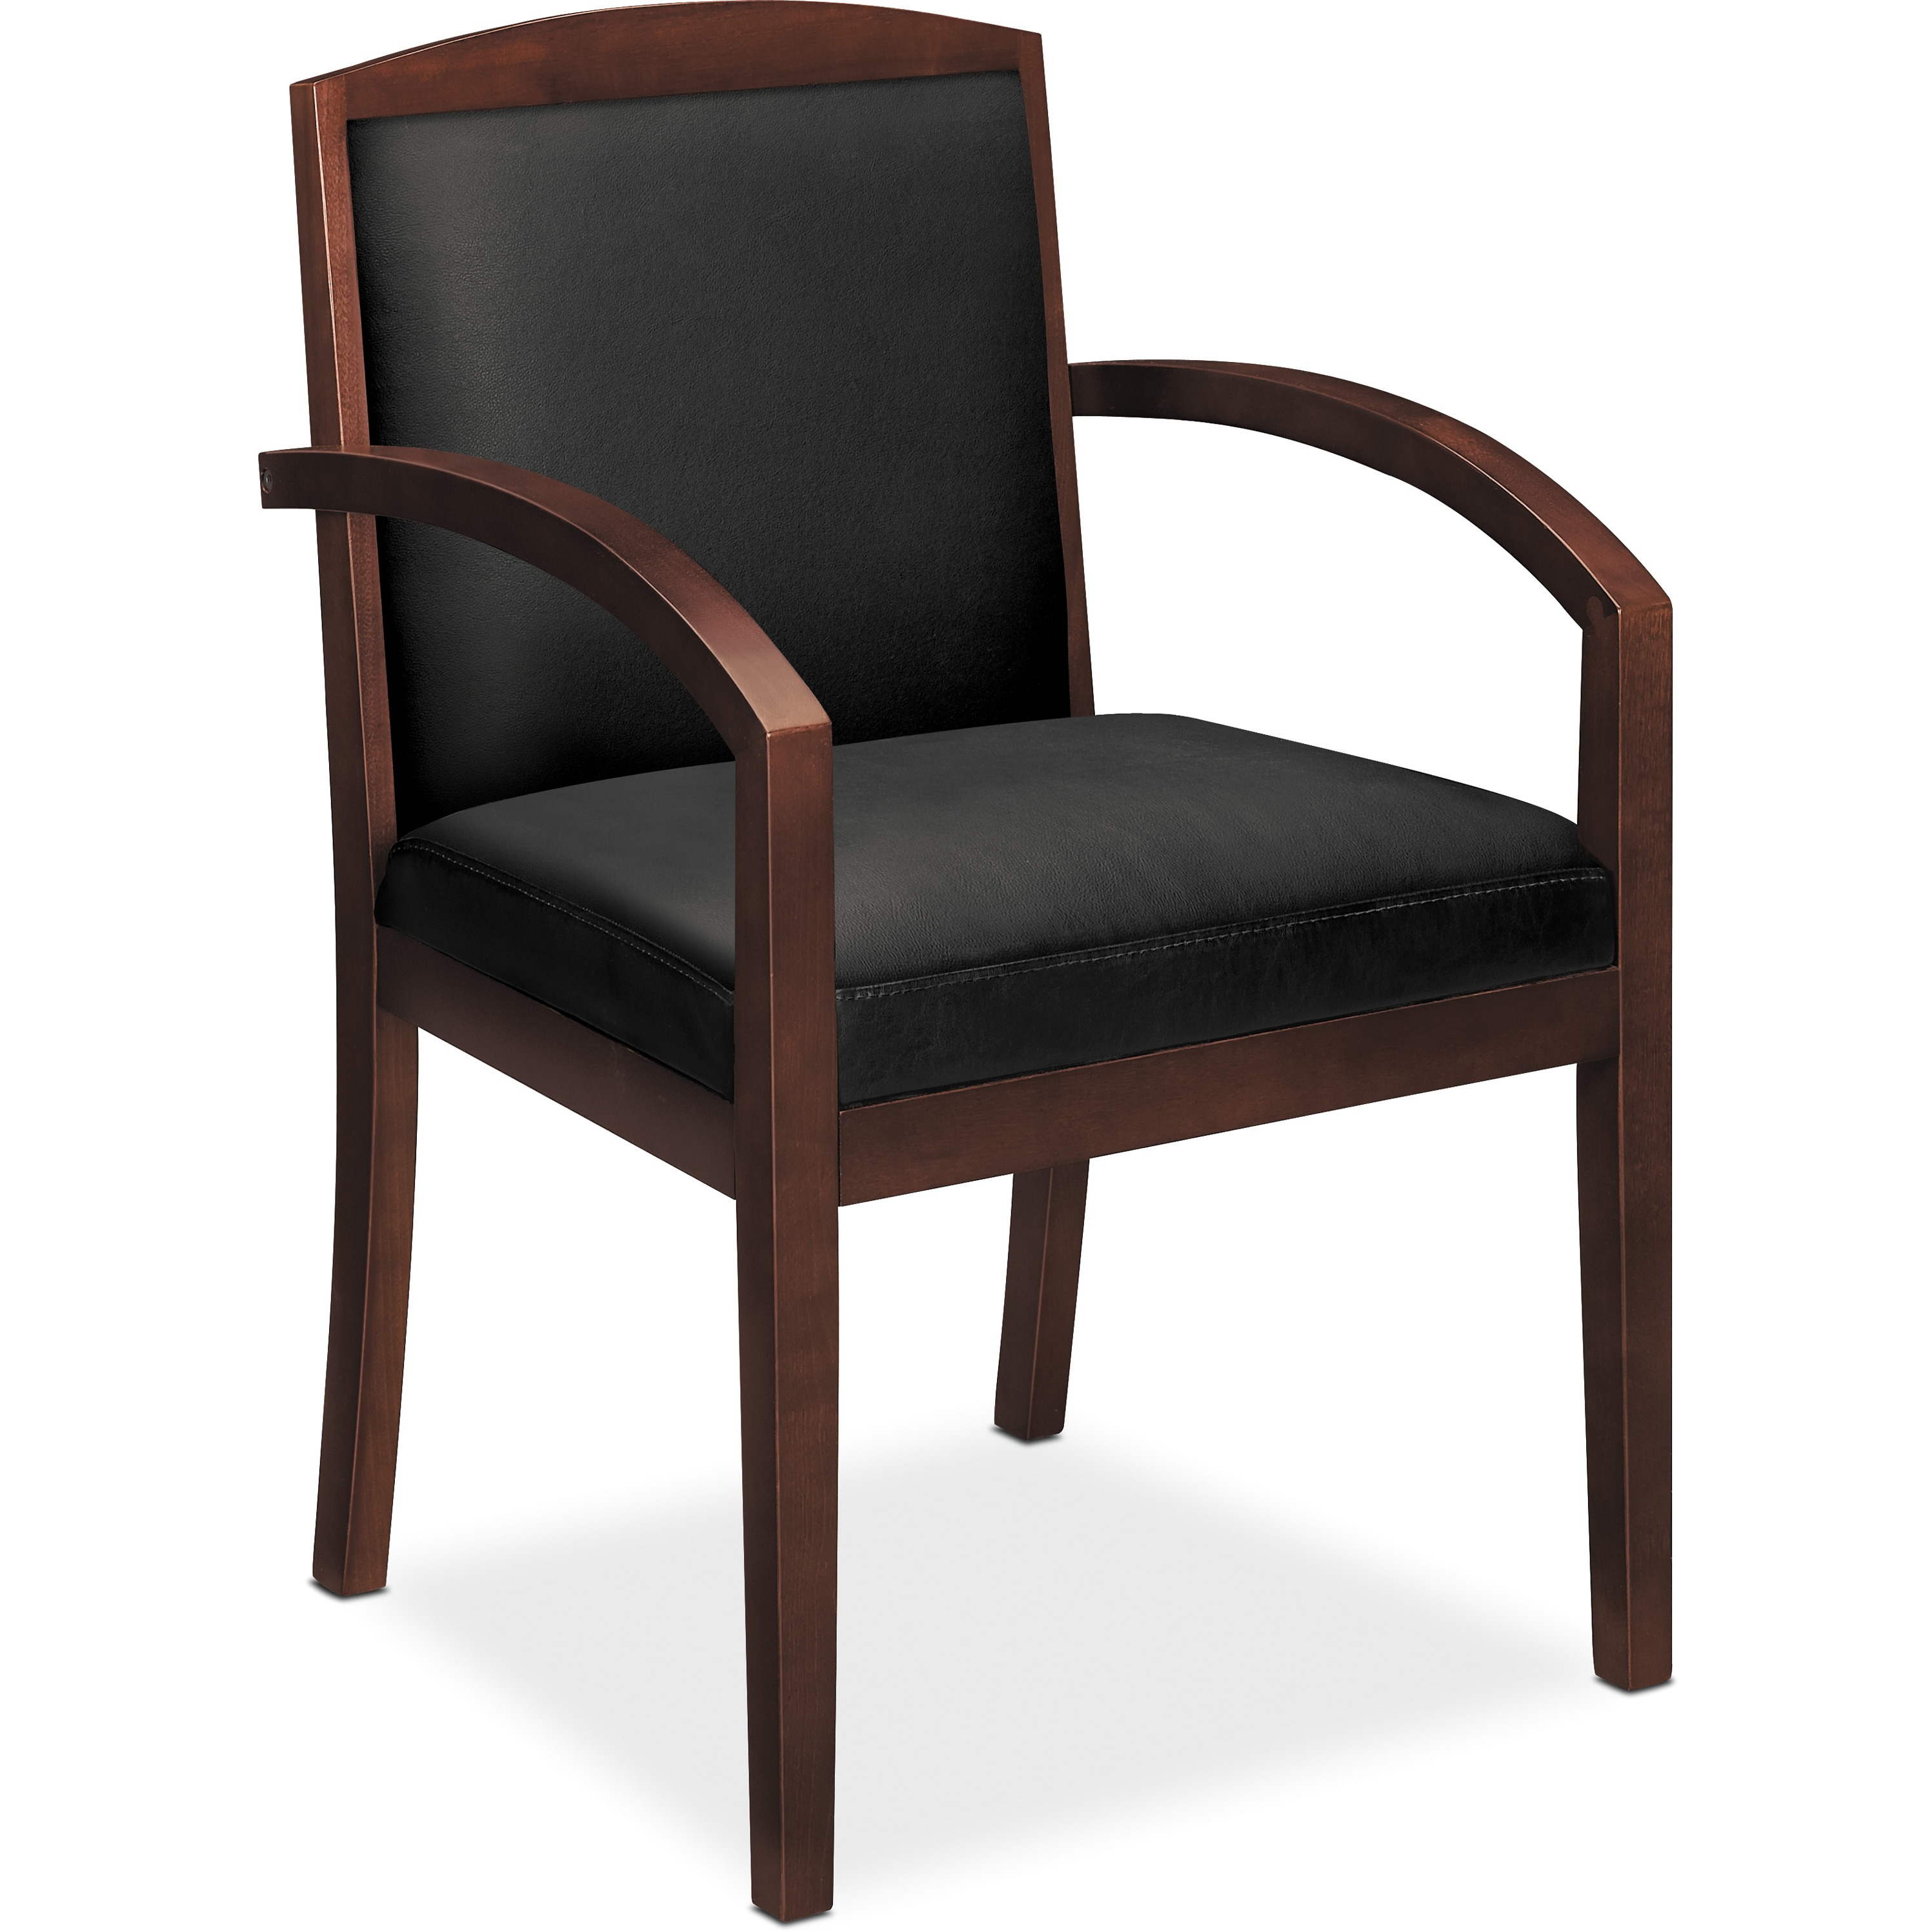 basyx VL850 Series Wood Guest Reception Waiting Room Chair, Black Leather Upholstery w/Mahogany Veneer